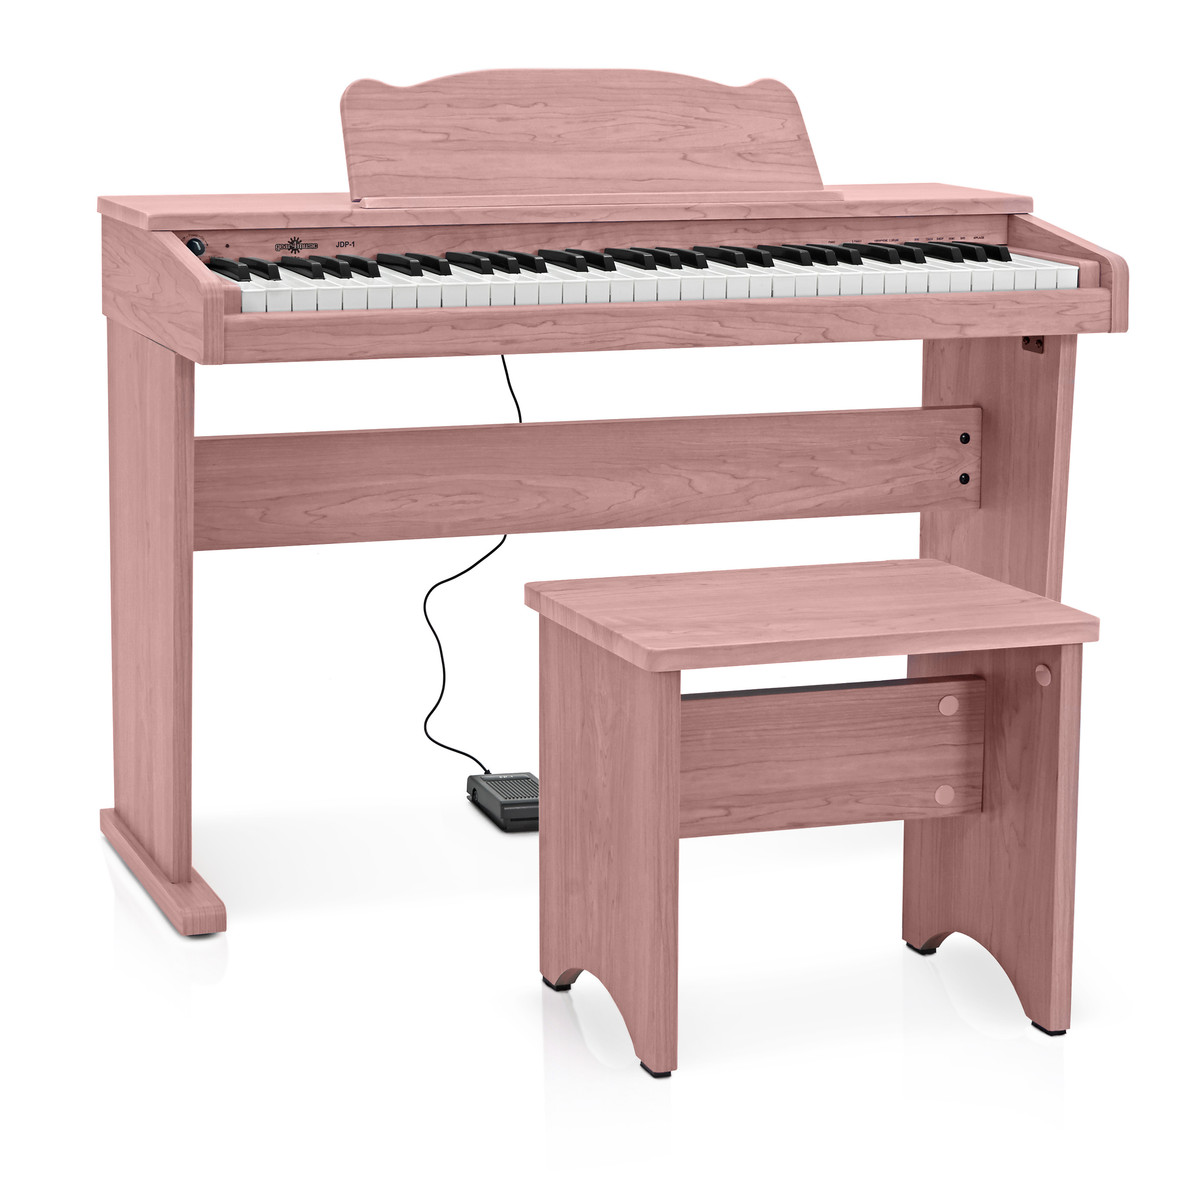 Image of JDP-1 Junior Digital Piano by Gear4music Pink